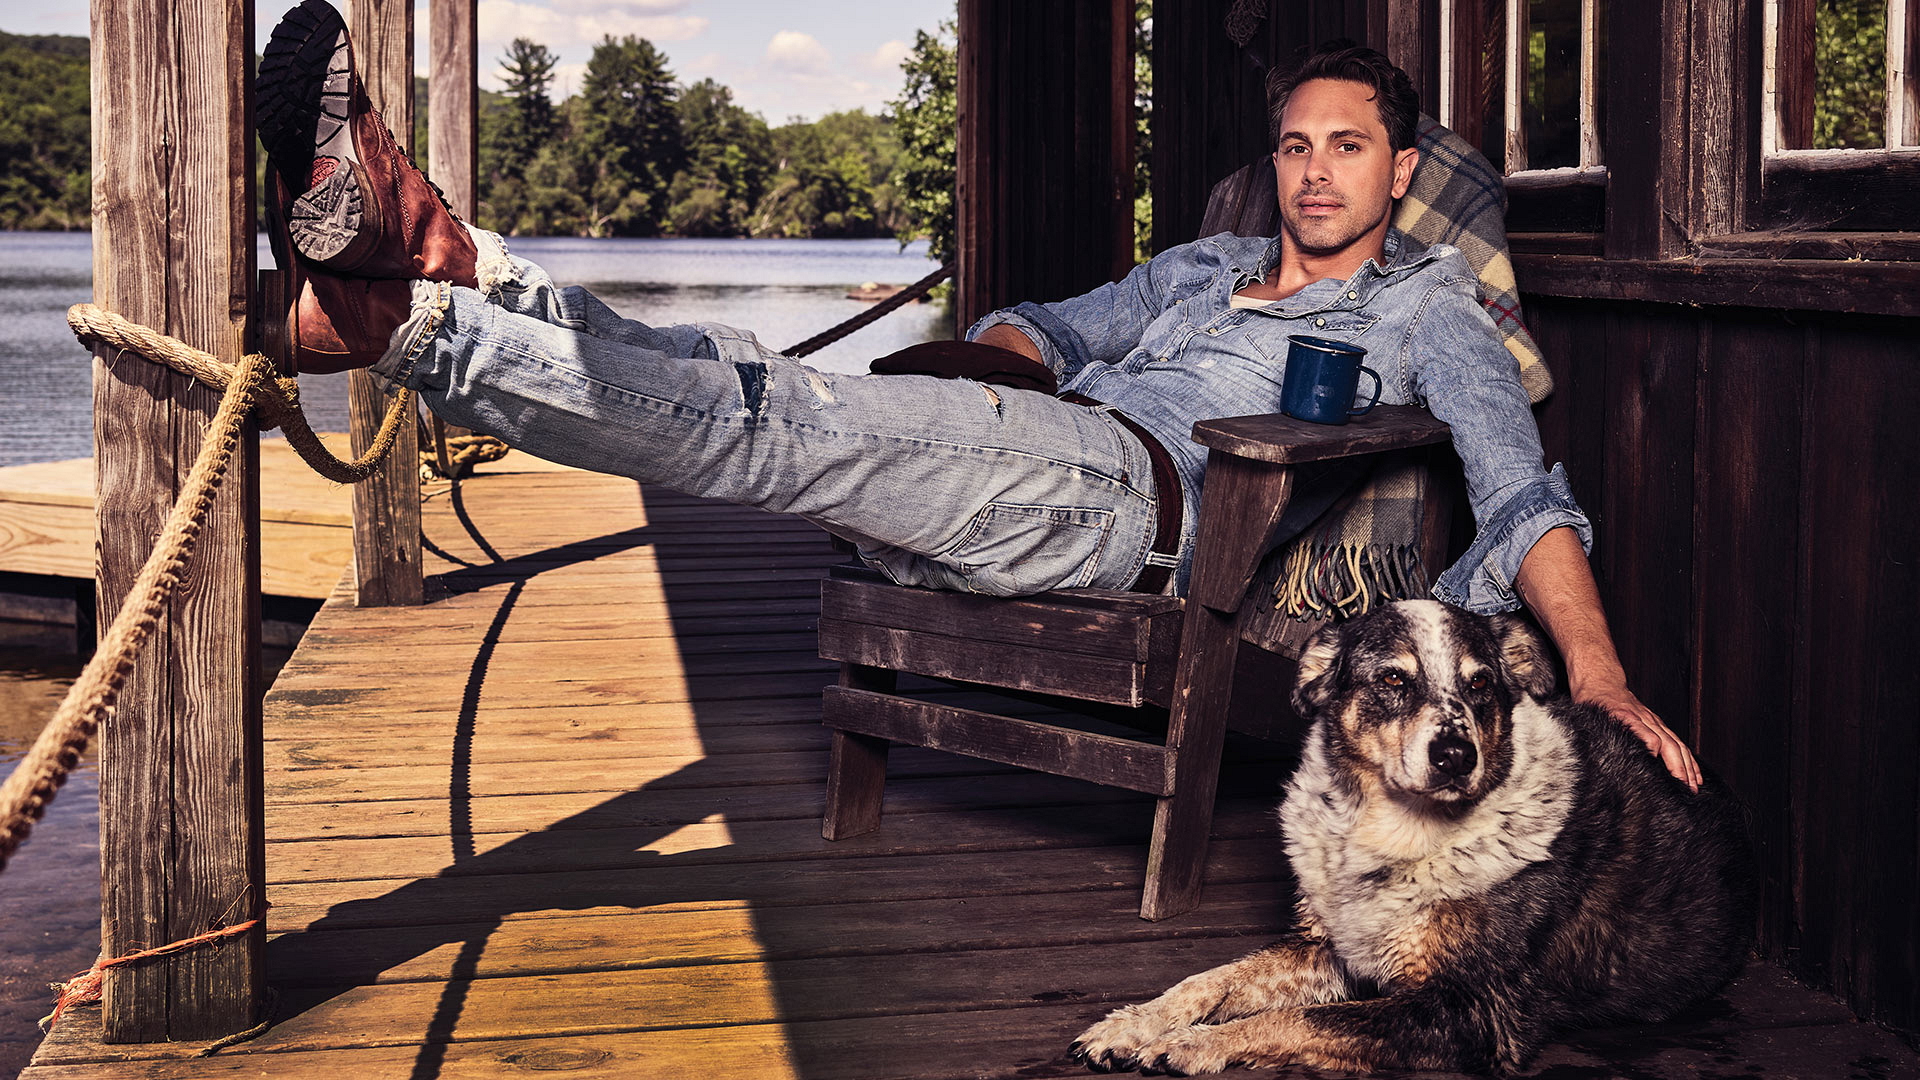 Need a break? Take a cue from your favorite CBS stars and take a load off.